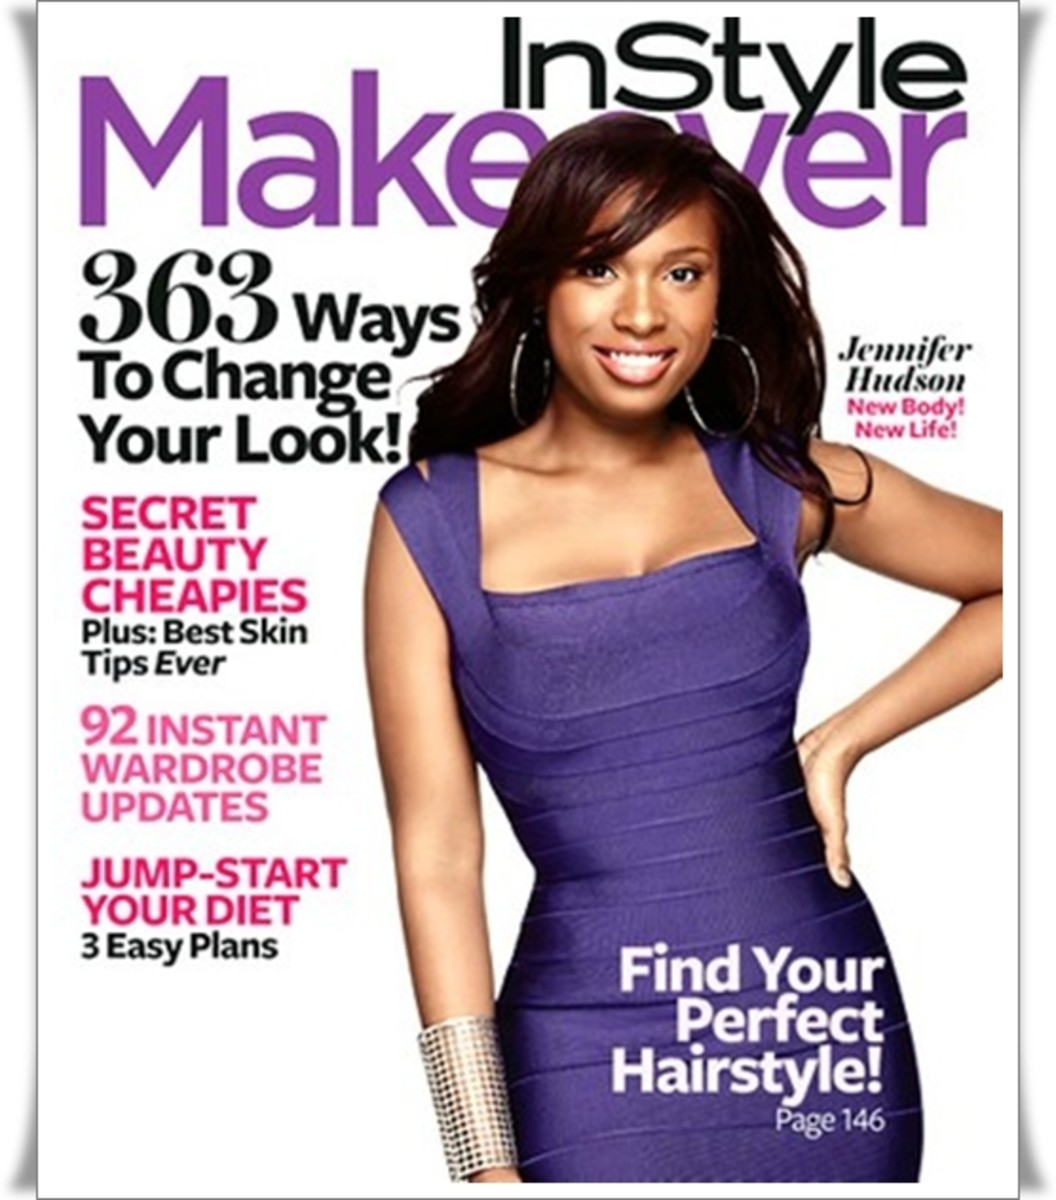 Jennifer Hudson gracing the cover of InStyle Makeover magazine. Photo:  Courtesy of InStyle magazine.